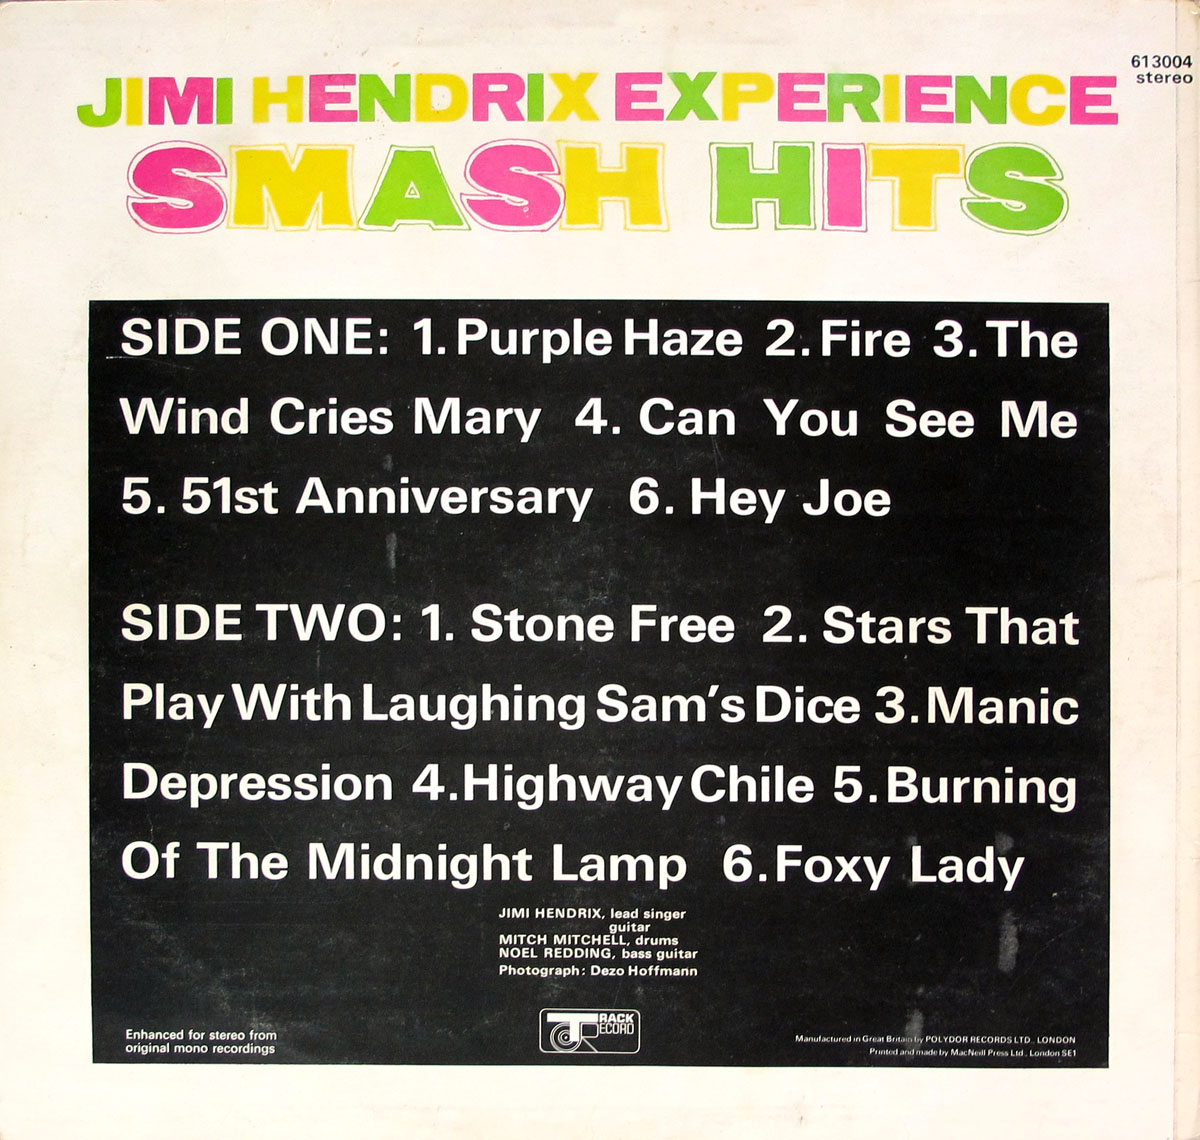 High Resolution Photo of jimi hendrix smash hits first